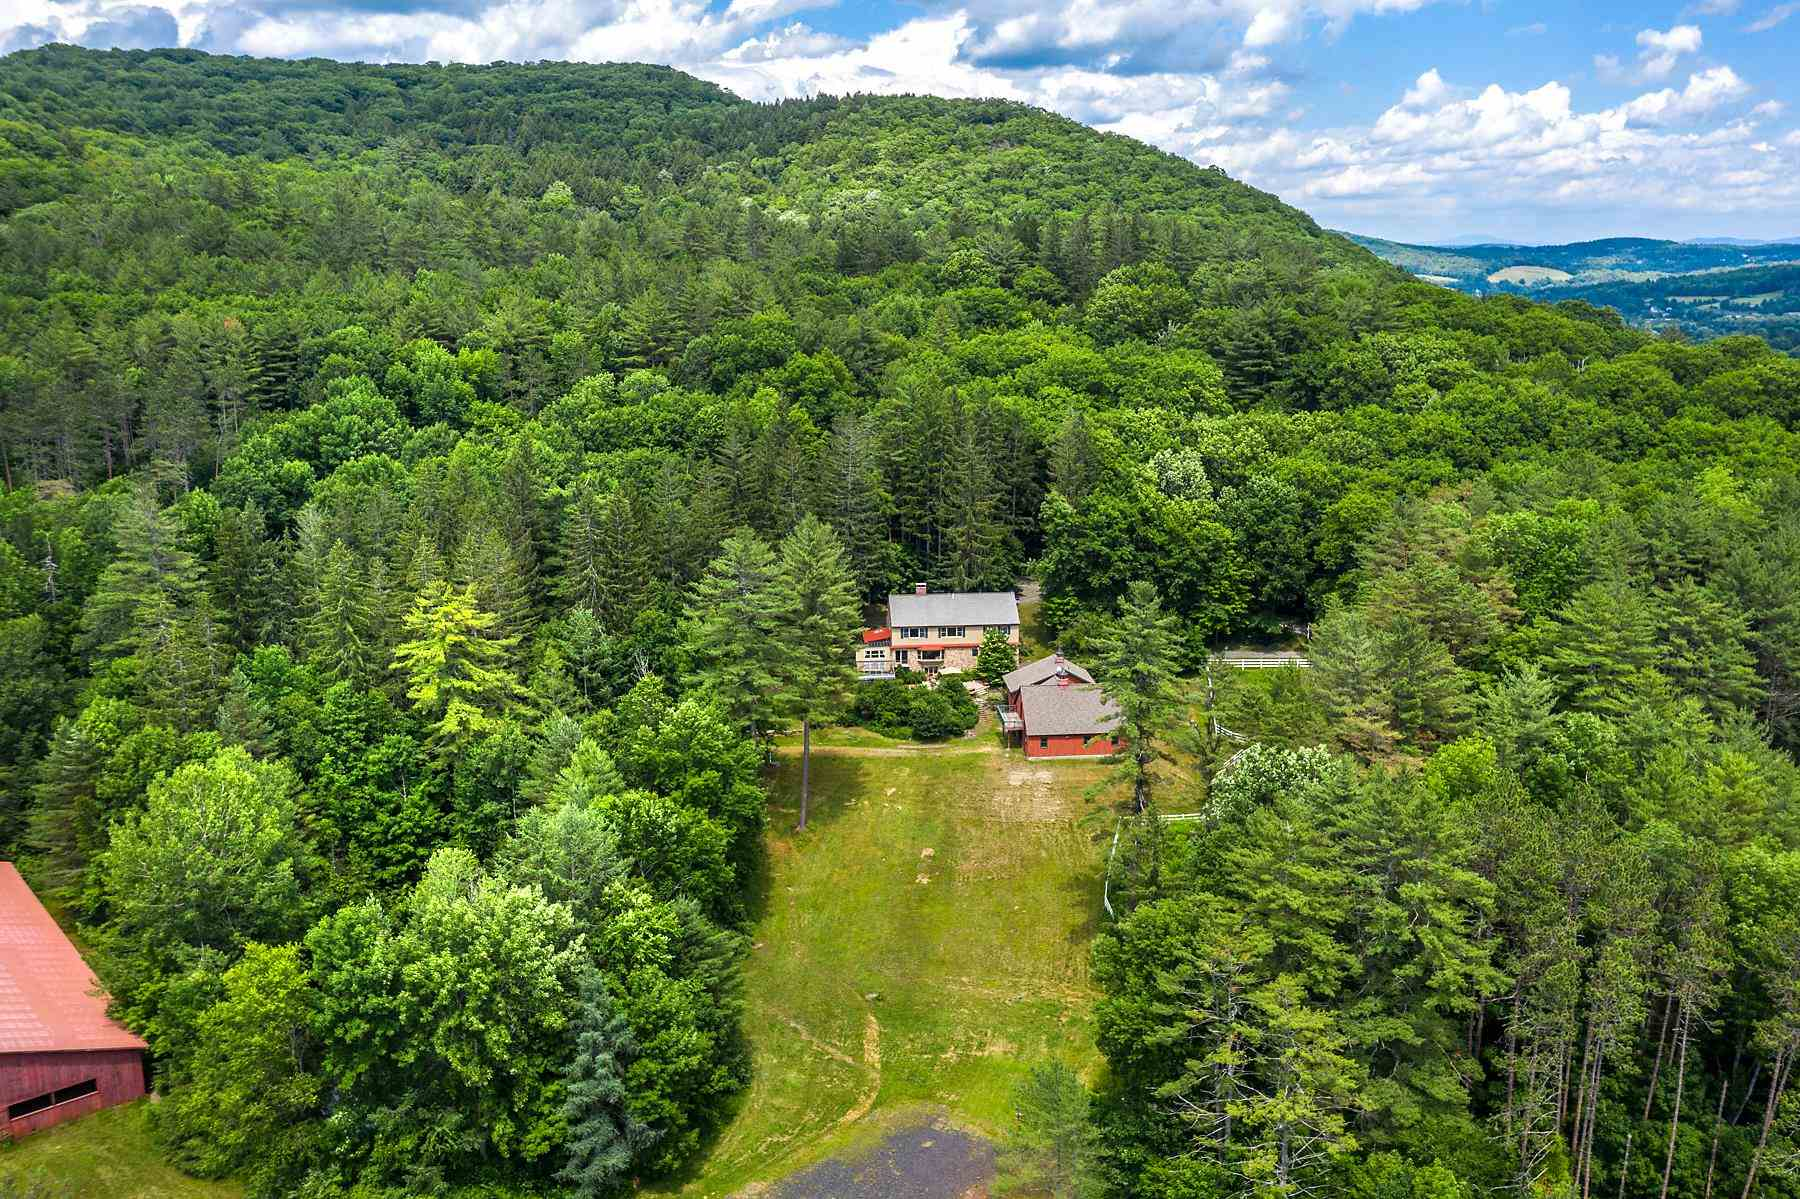 121 Frenchs Road, Woodstock, VT 05091